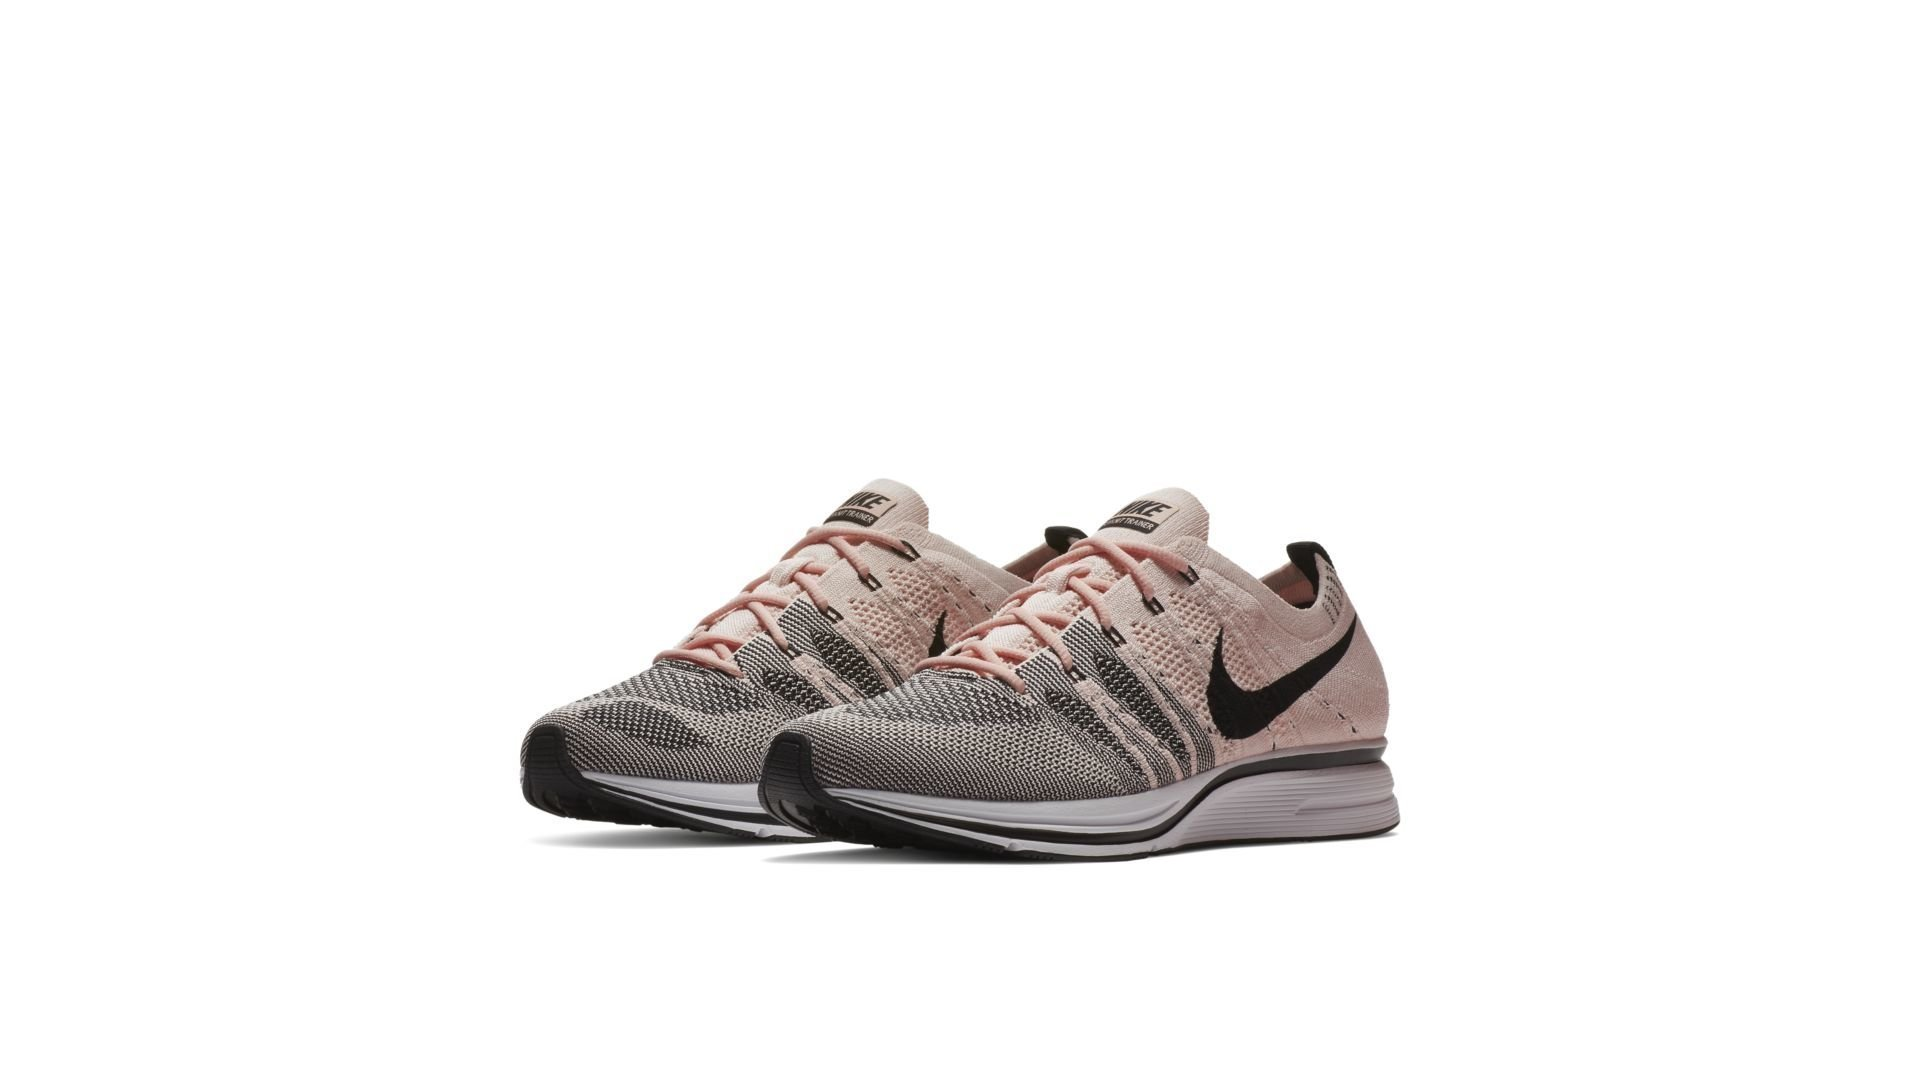 Nike Flyknit Trainer Sunset Tint (AH8396-600)